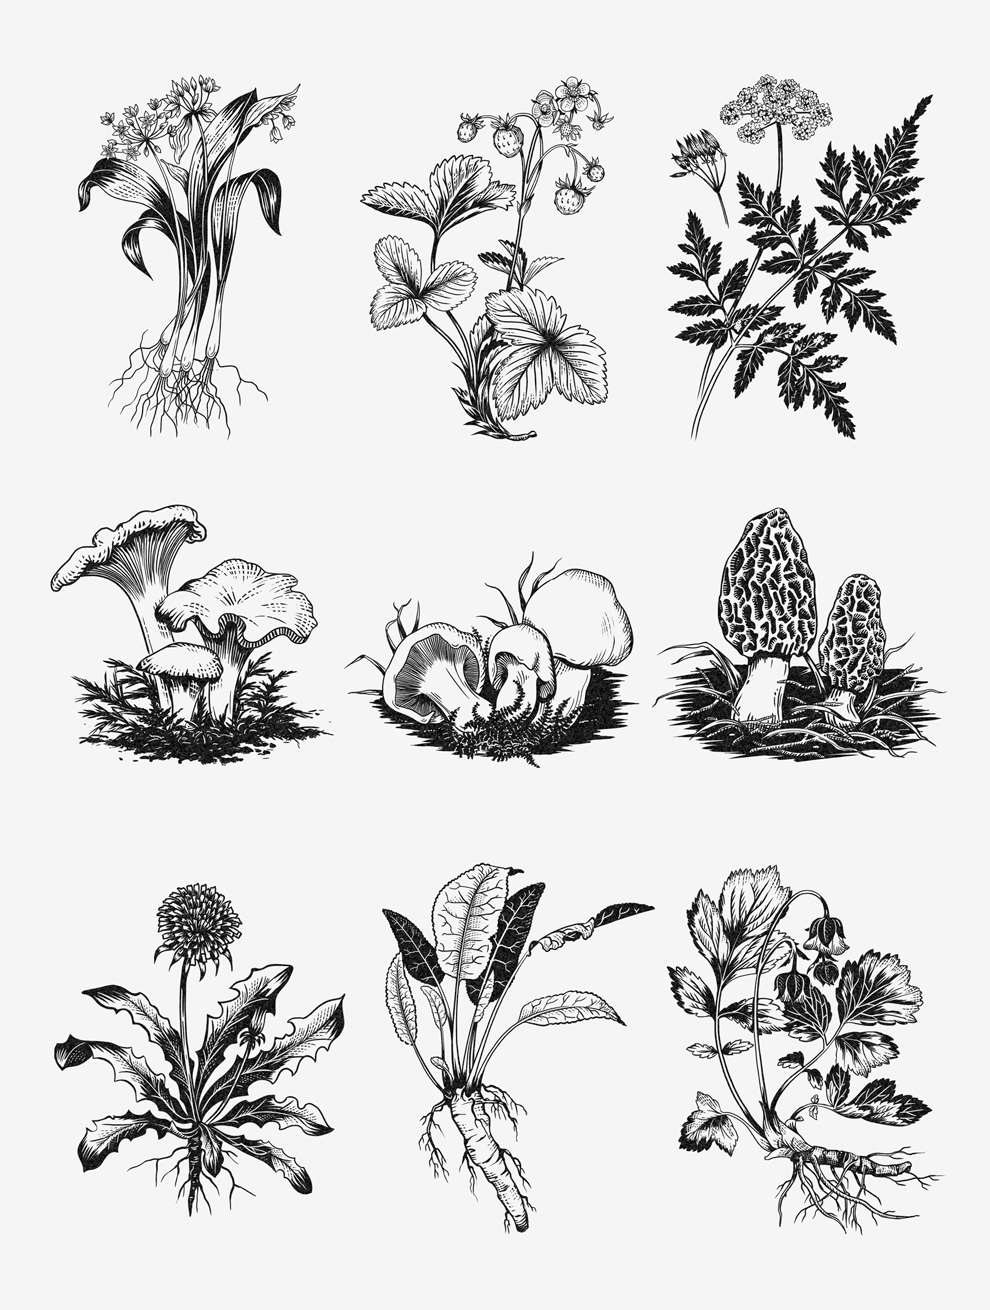 Charlotte Day, Detailed drawing of botanical elements including mushrooms.